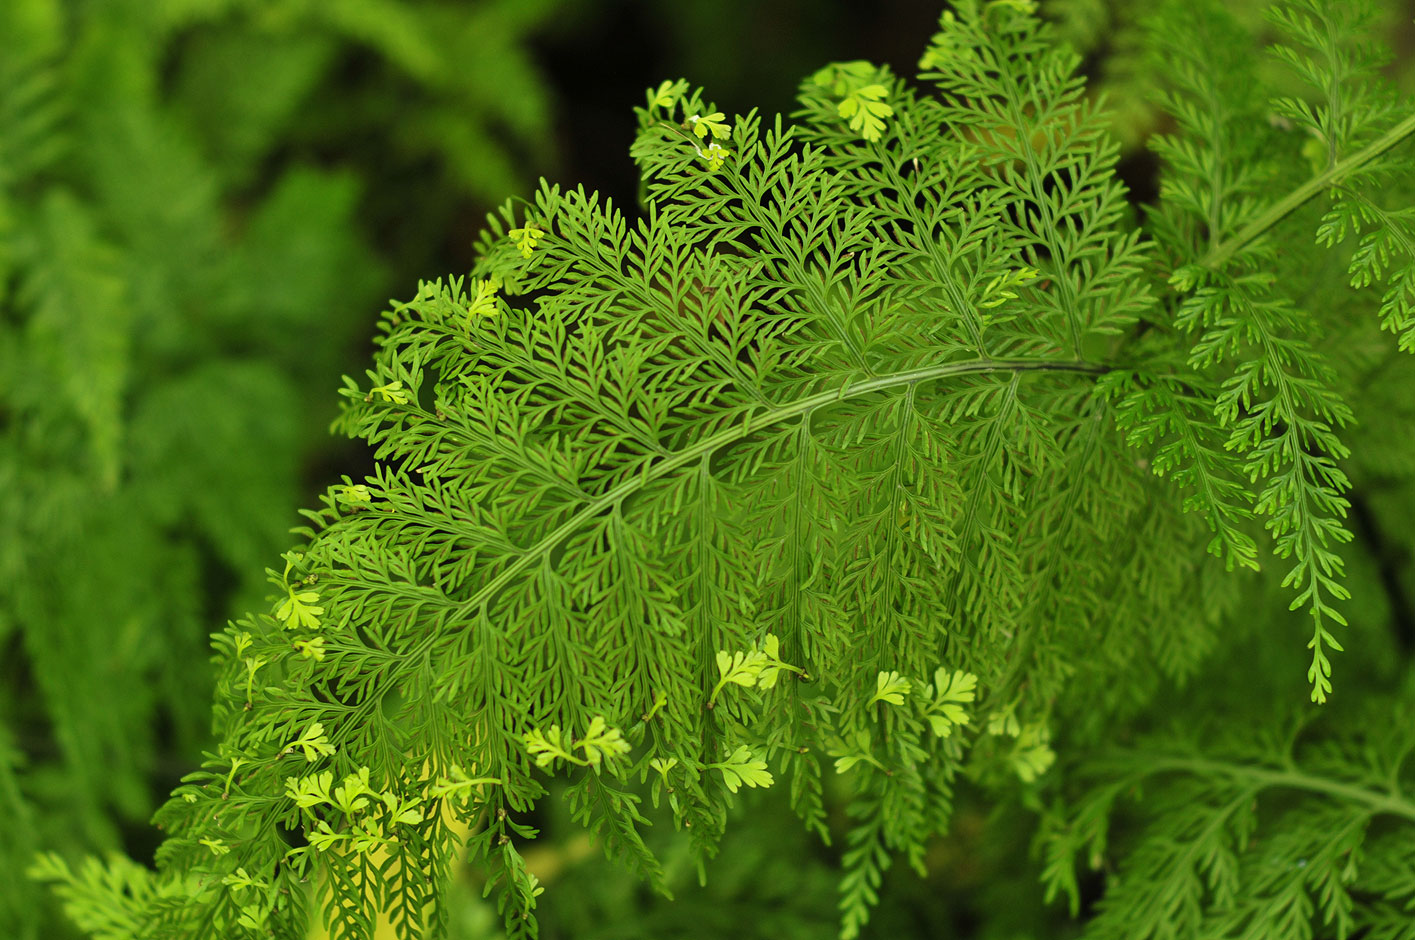 Photo: Fern at the Pacific Palisades Garden, Los Angeles, California